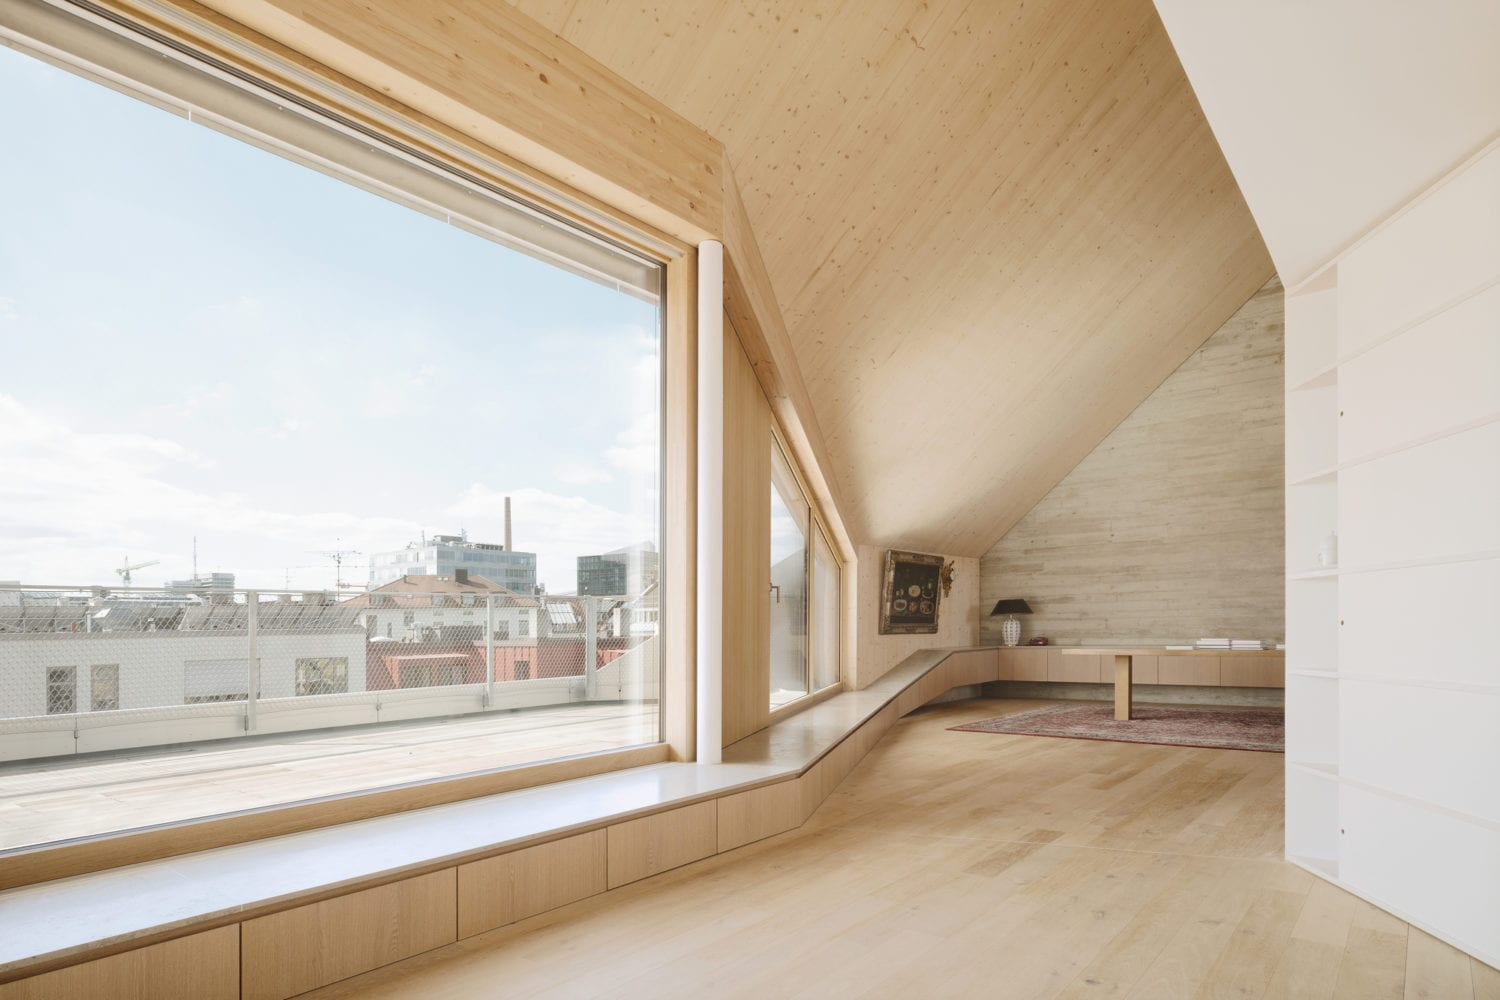 Maxvorstadt R11 Roof Extension in Munich, Germany by Pool Leber Architekten   Yellowtrace